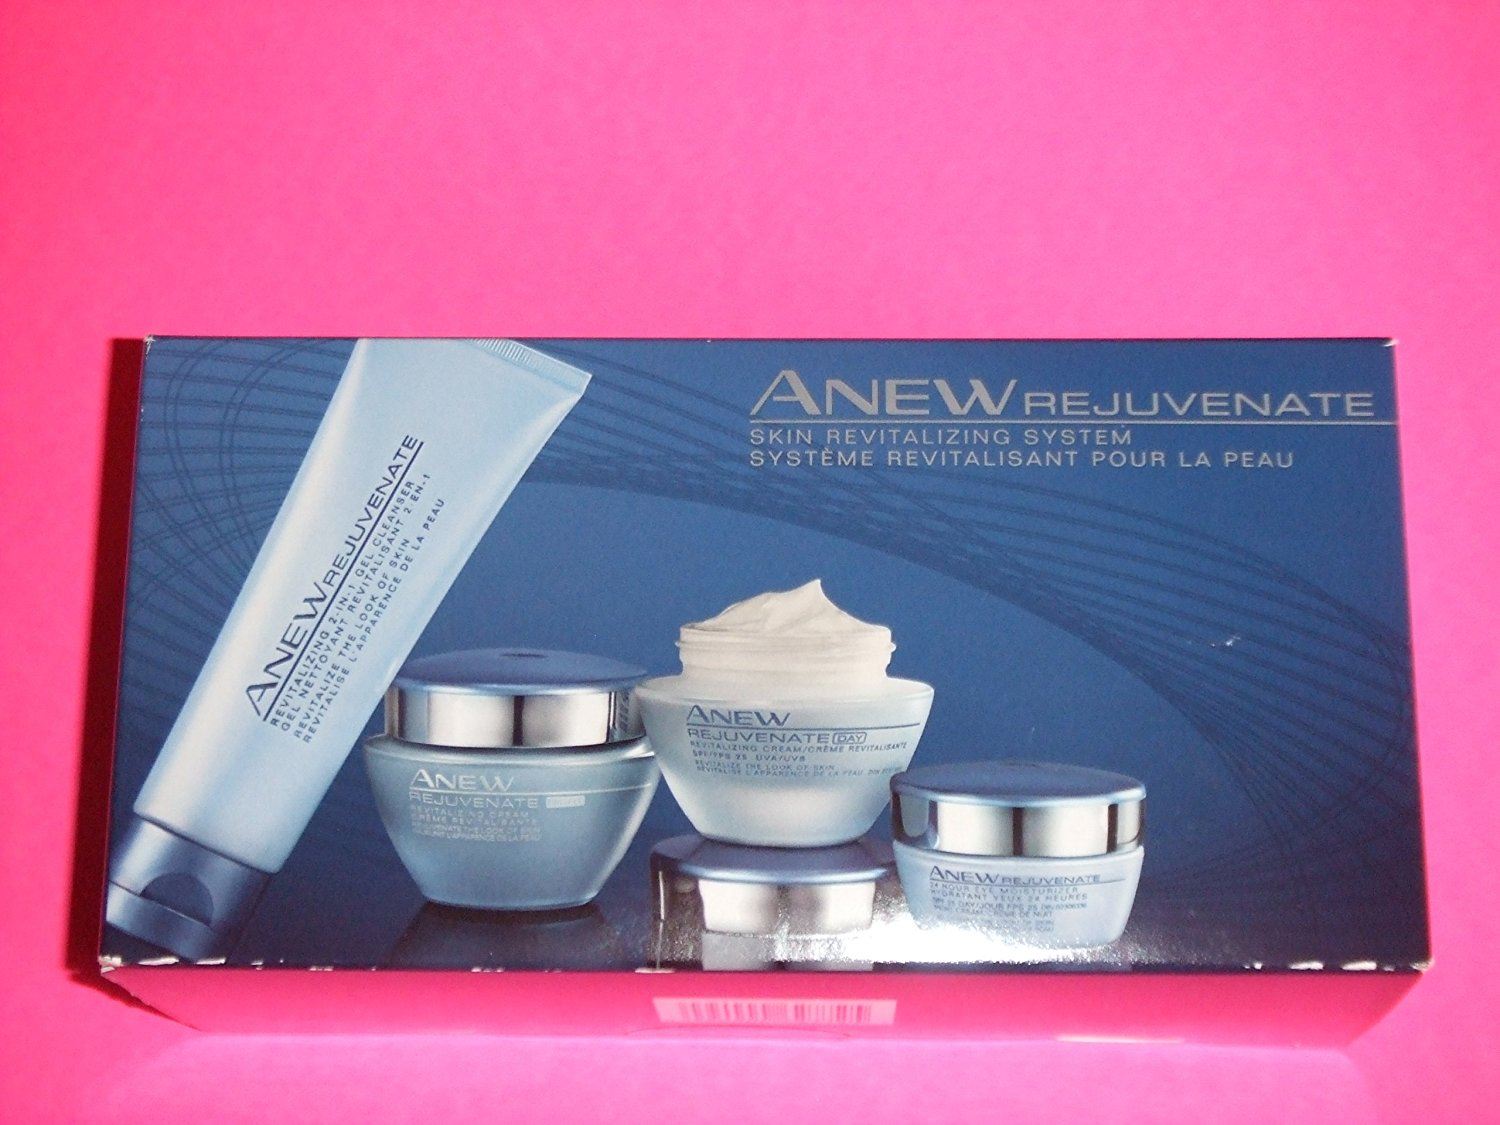 Anew rejuvenate glycolic facial treatment